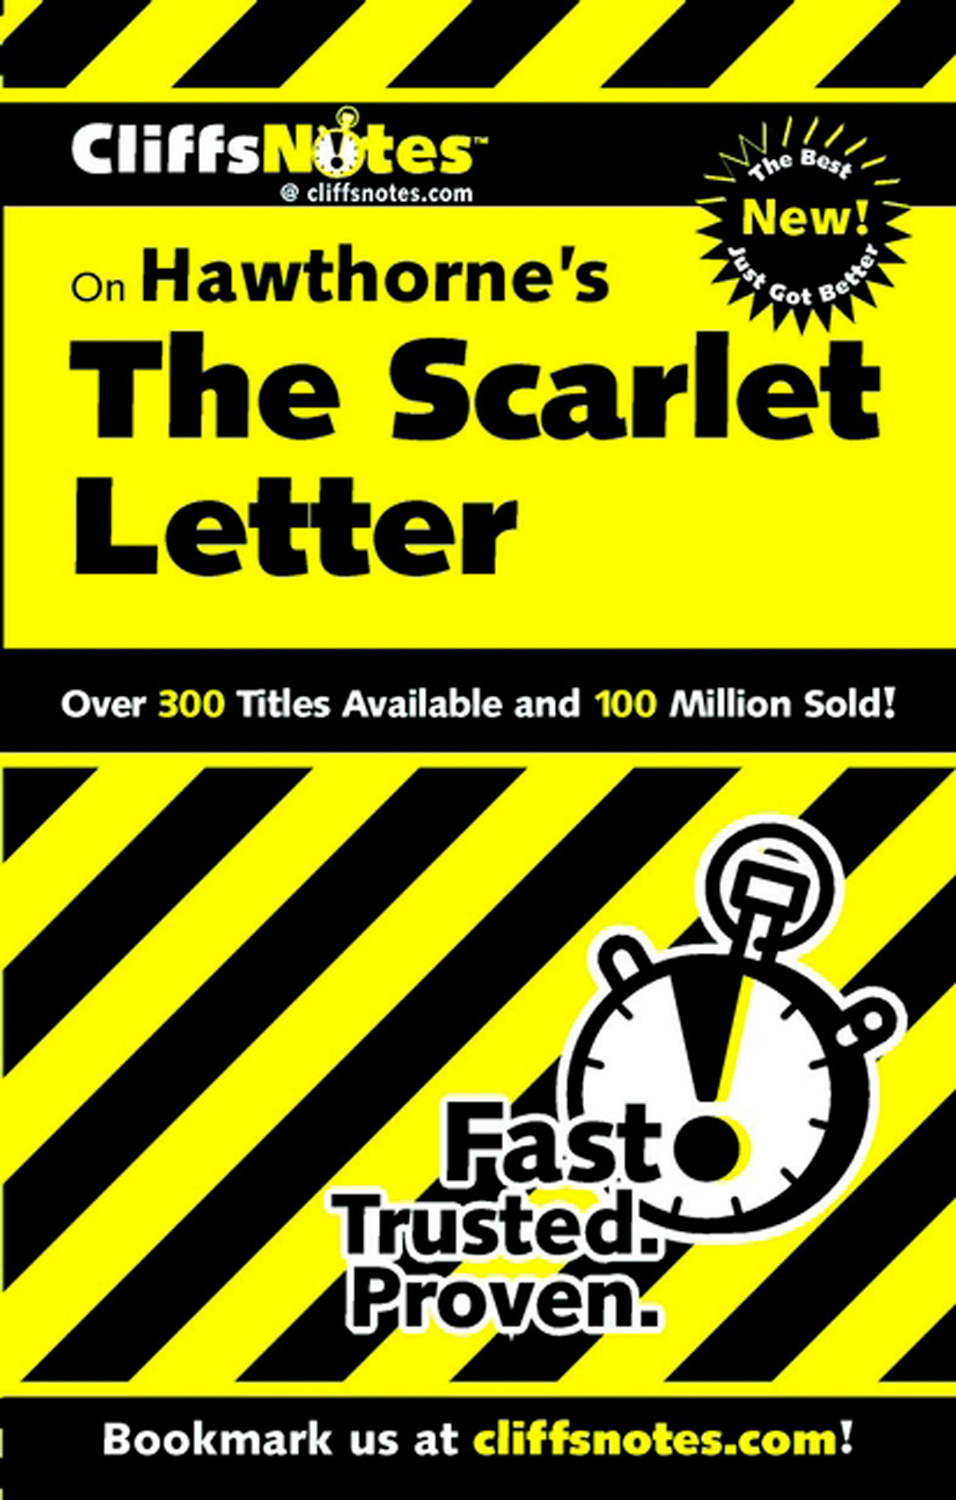 CliffsNotes on Hawthorne's The Scarlet Letter-9780764586057